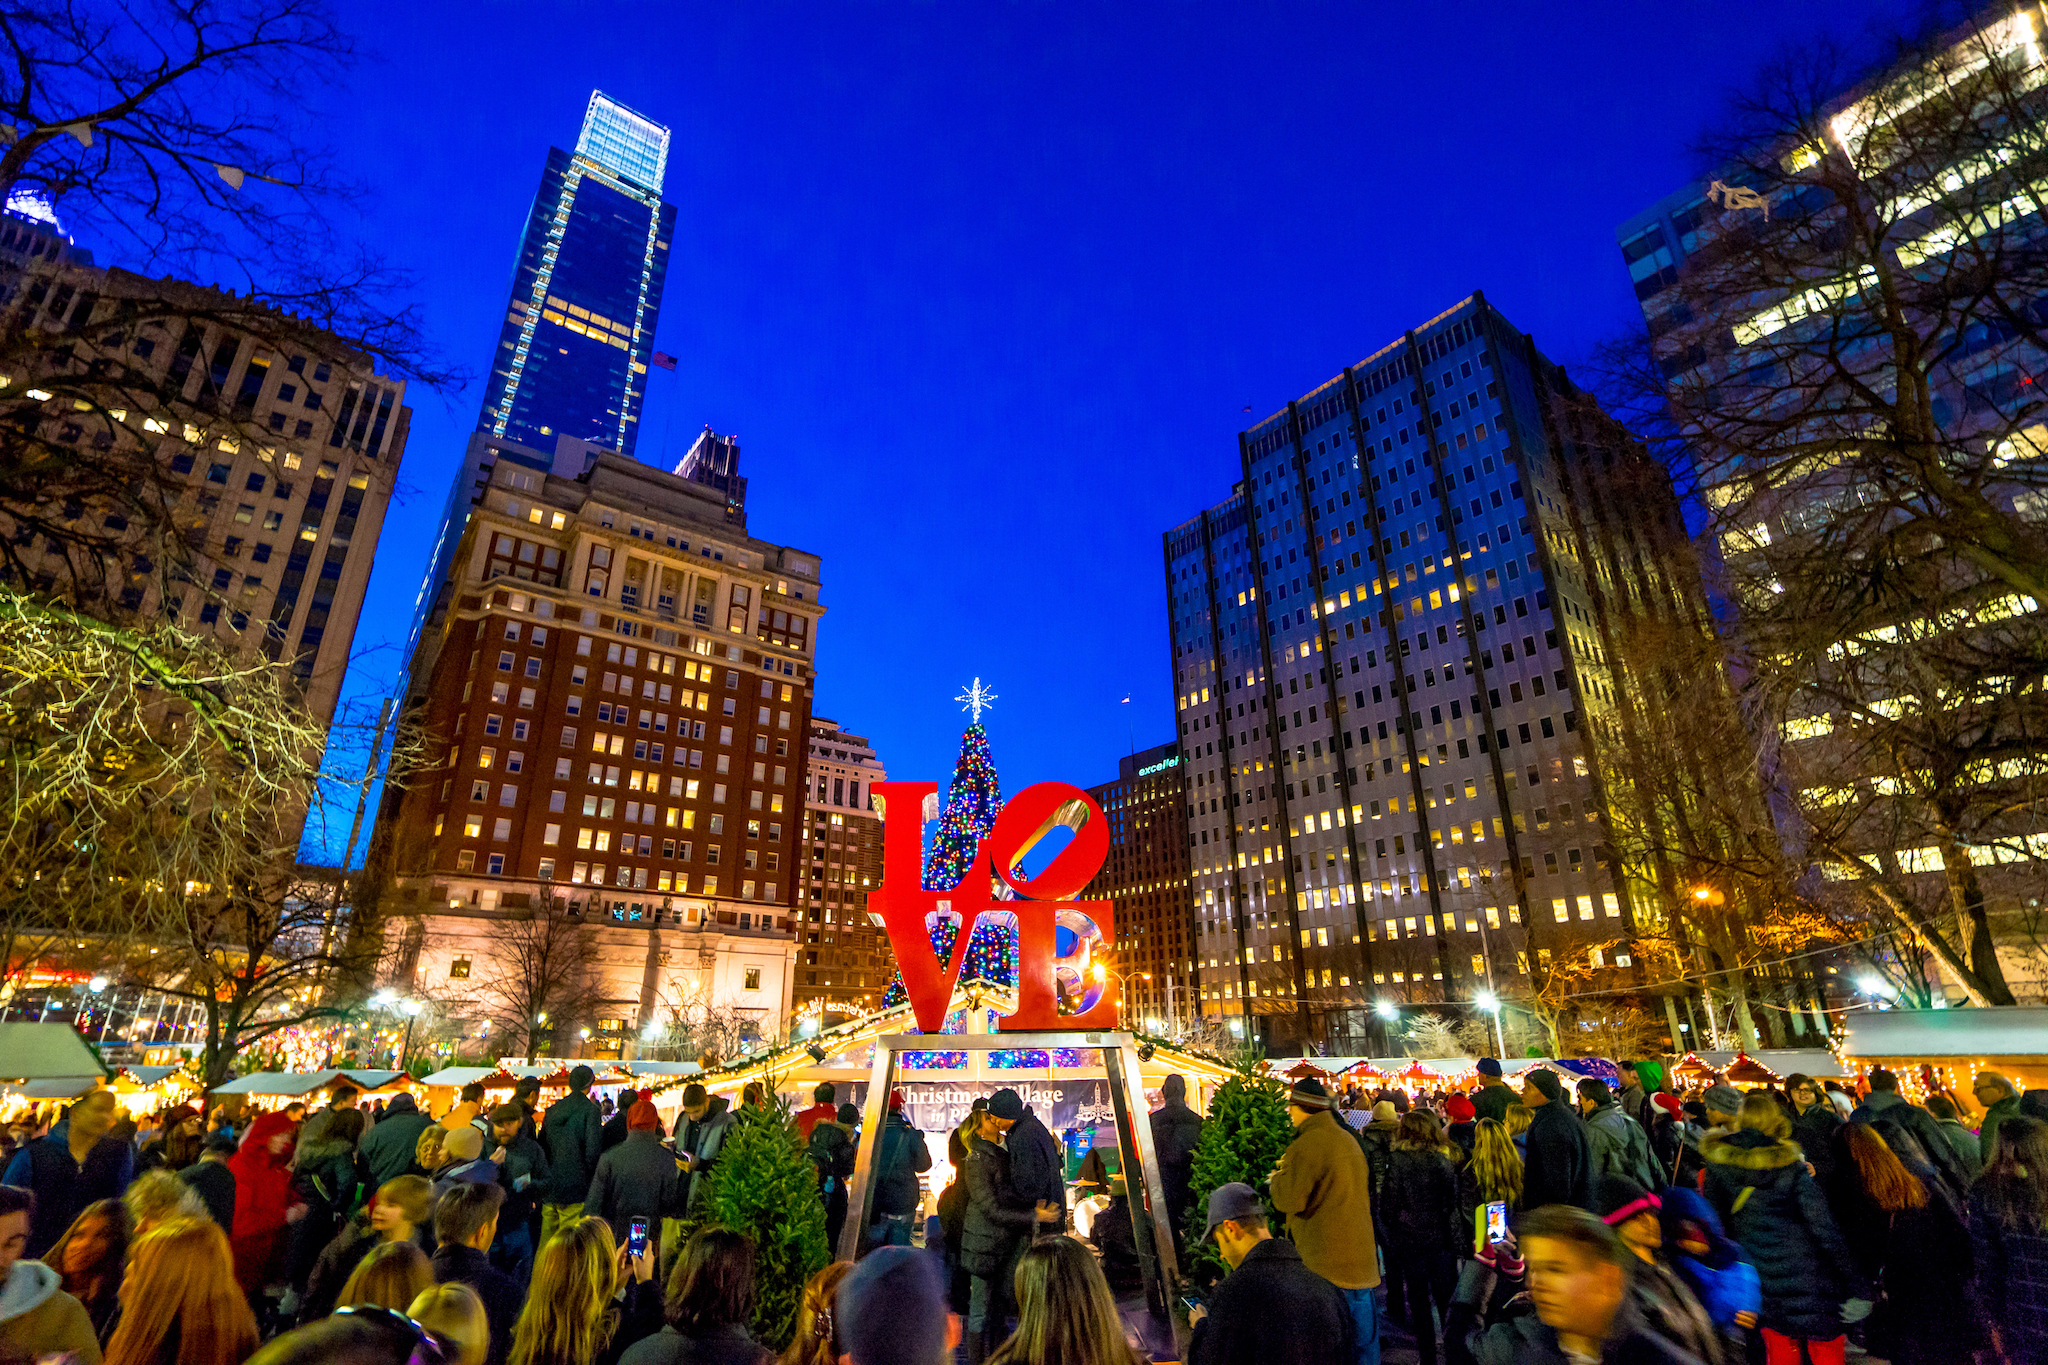 21 Best Christmas Events and Attractions in Philadelphia